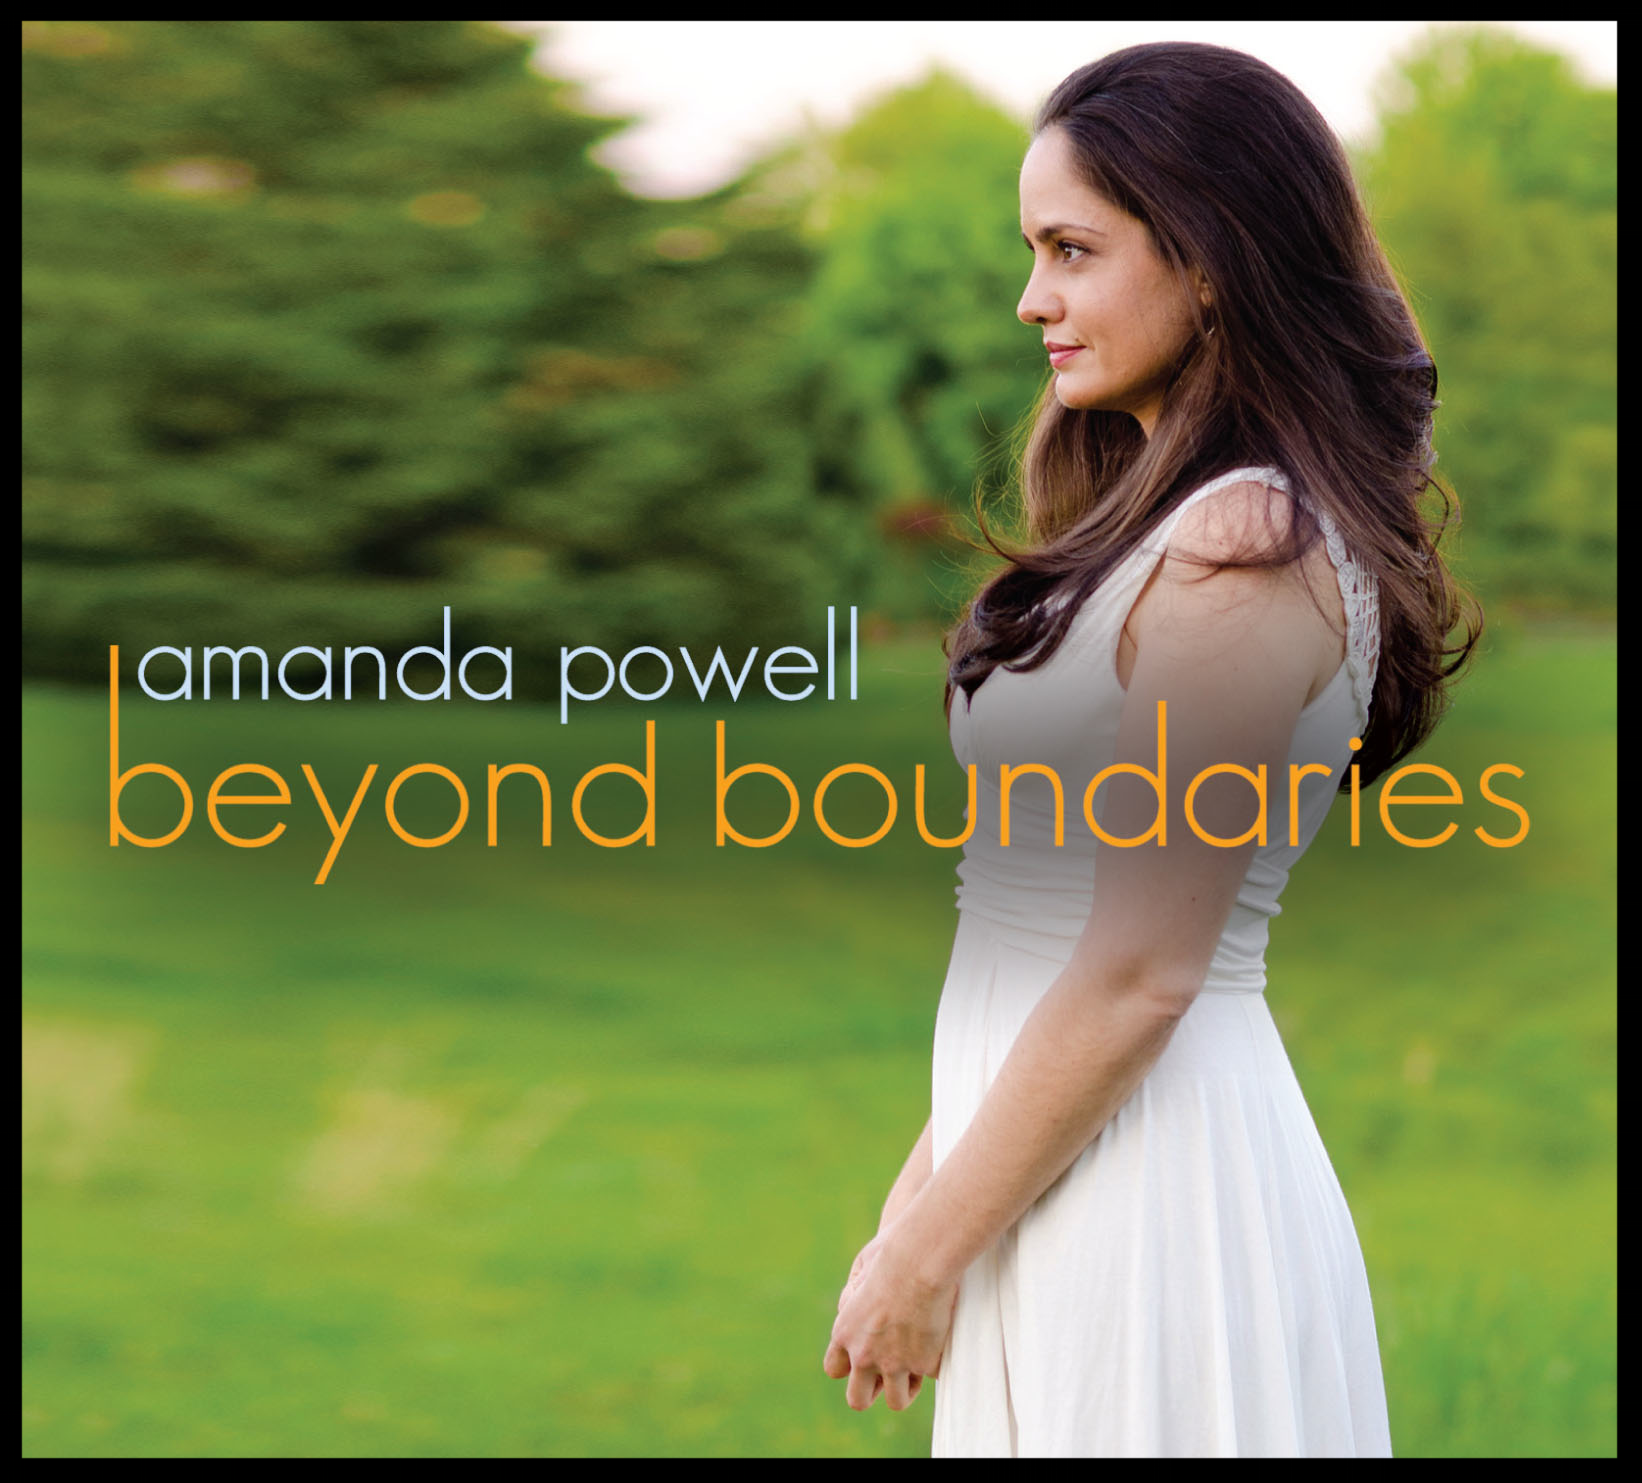 """Amanda Powell's  Beyond Boundaries  is a collection of songs from around the world, including Venezuela, Bulgaria, Mongolia, Ireland, and the Middle East. The recording """"transcends boundaries of genre, style, region, and expectation into the connective heart of music."""" Powell, a featured vocal soloist with Apollo's Fire Baroque Orchestra has traveled the world collecting the songs and stories featured here. Several Youngstown State University faculty participated in this recording including clarinetist Alice Wang, percussionist Glenn Schaft, and pianists Cicilia Yudha and Alton Merrell. Dave Morgan, Professor of Jazz Studies and Double Bass, co-produced and arranged the music, as well as playing bass. Glenn plays congas, frame drums, and assorted hand-held percussion on three tracks."""